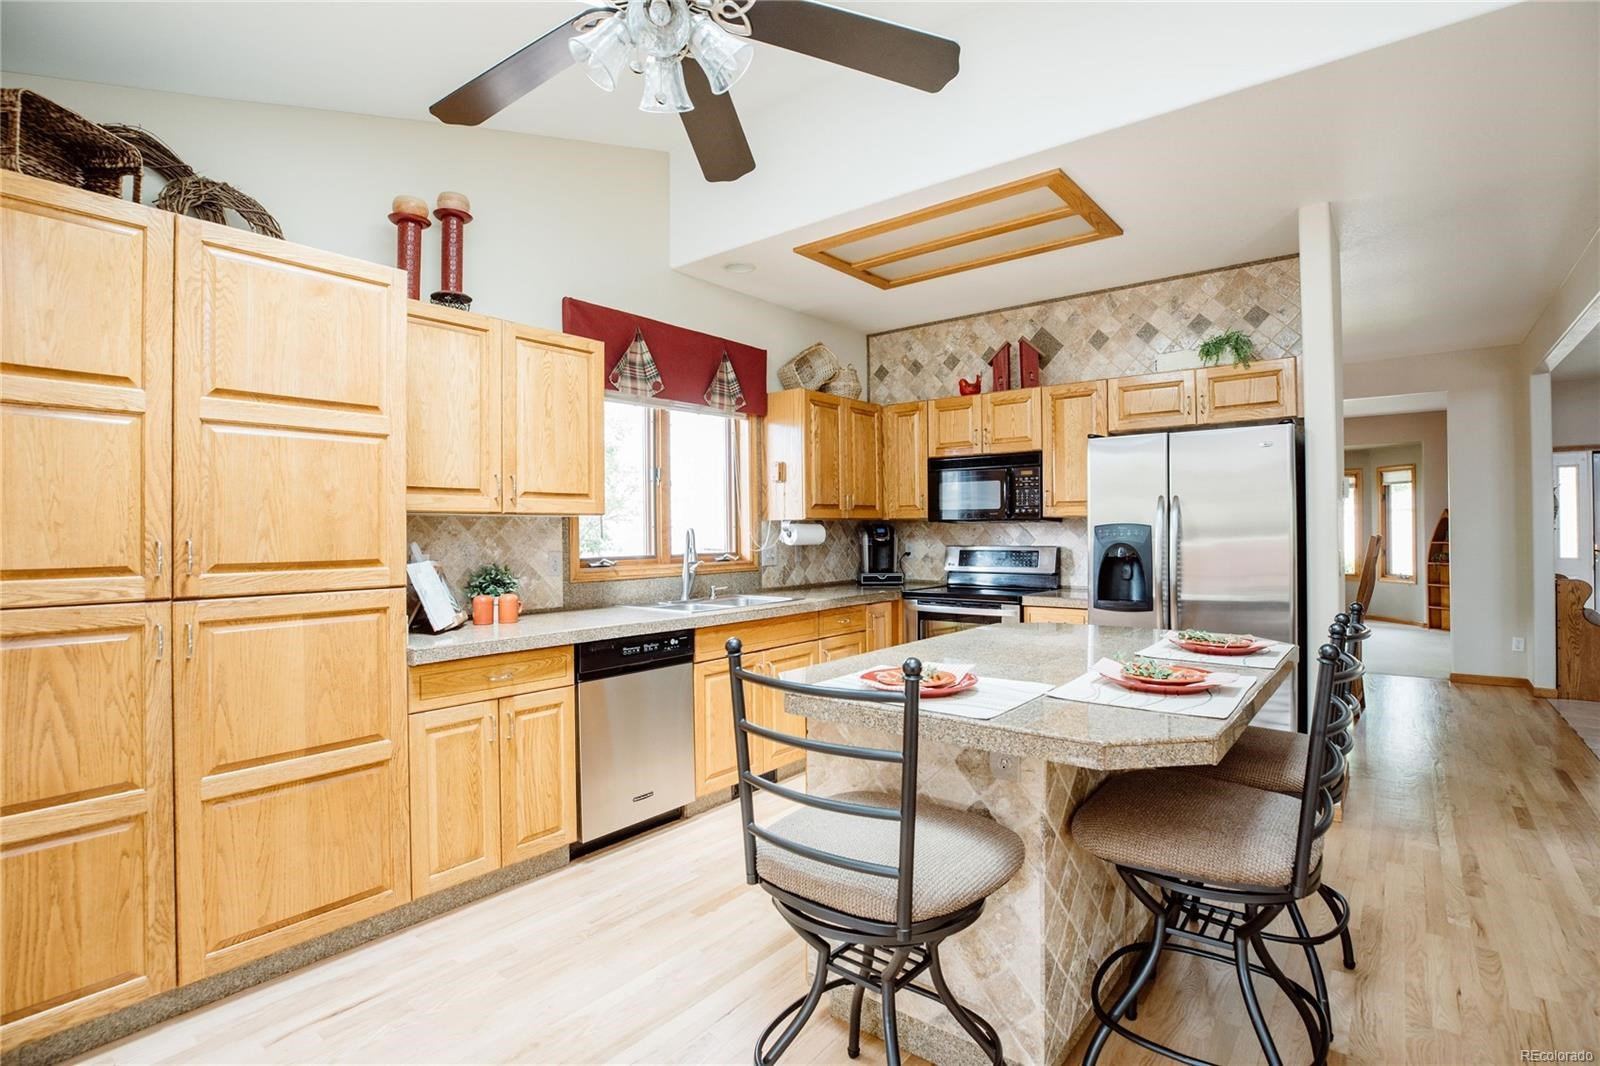 MLS# 4033949 - 11 - 3713 Ashmount Drive, Fort Collins, CO 80525